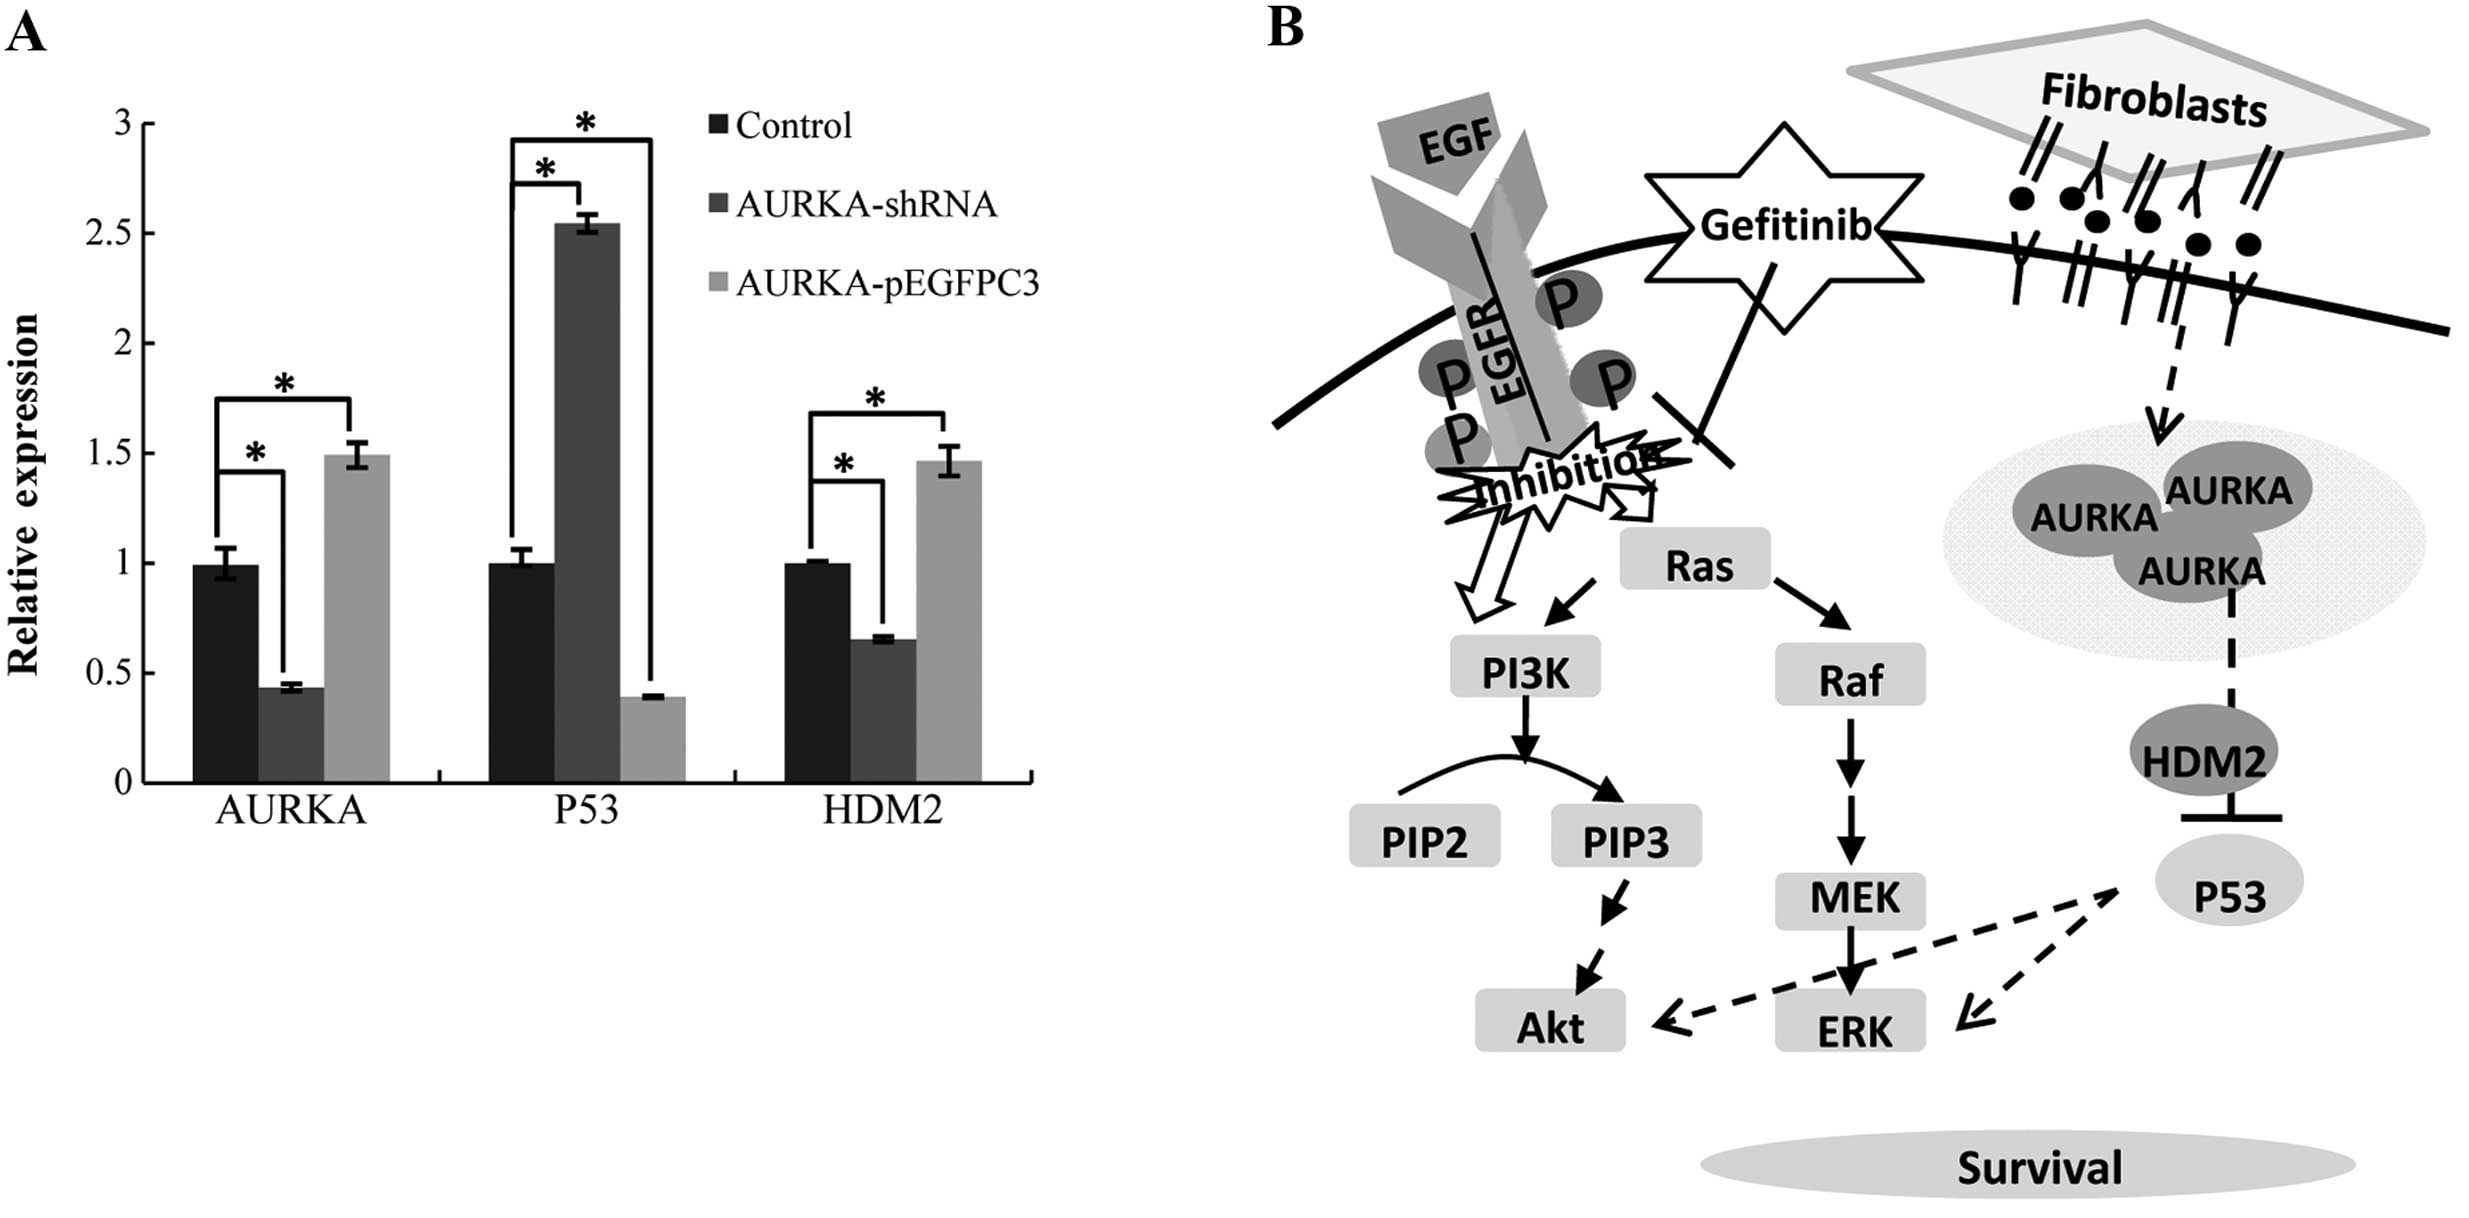 HDM2 Regulation by AURKA Promotes Cell Survival in Gastric